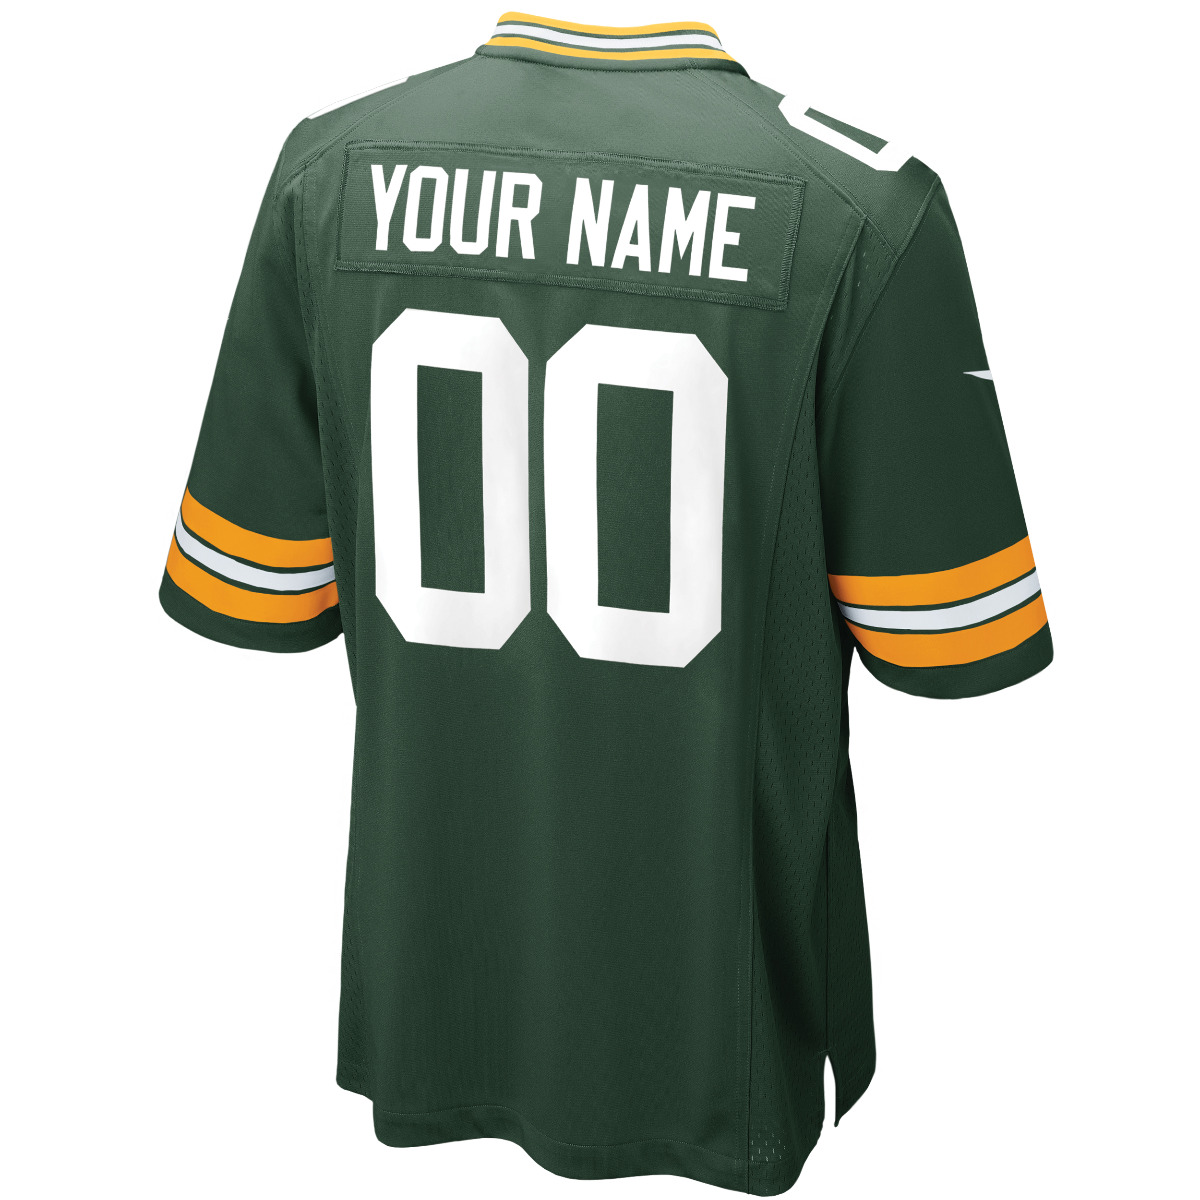 Packers Custom Home Game Jersey